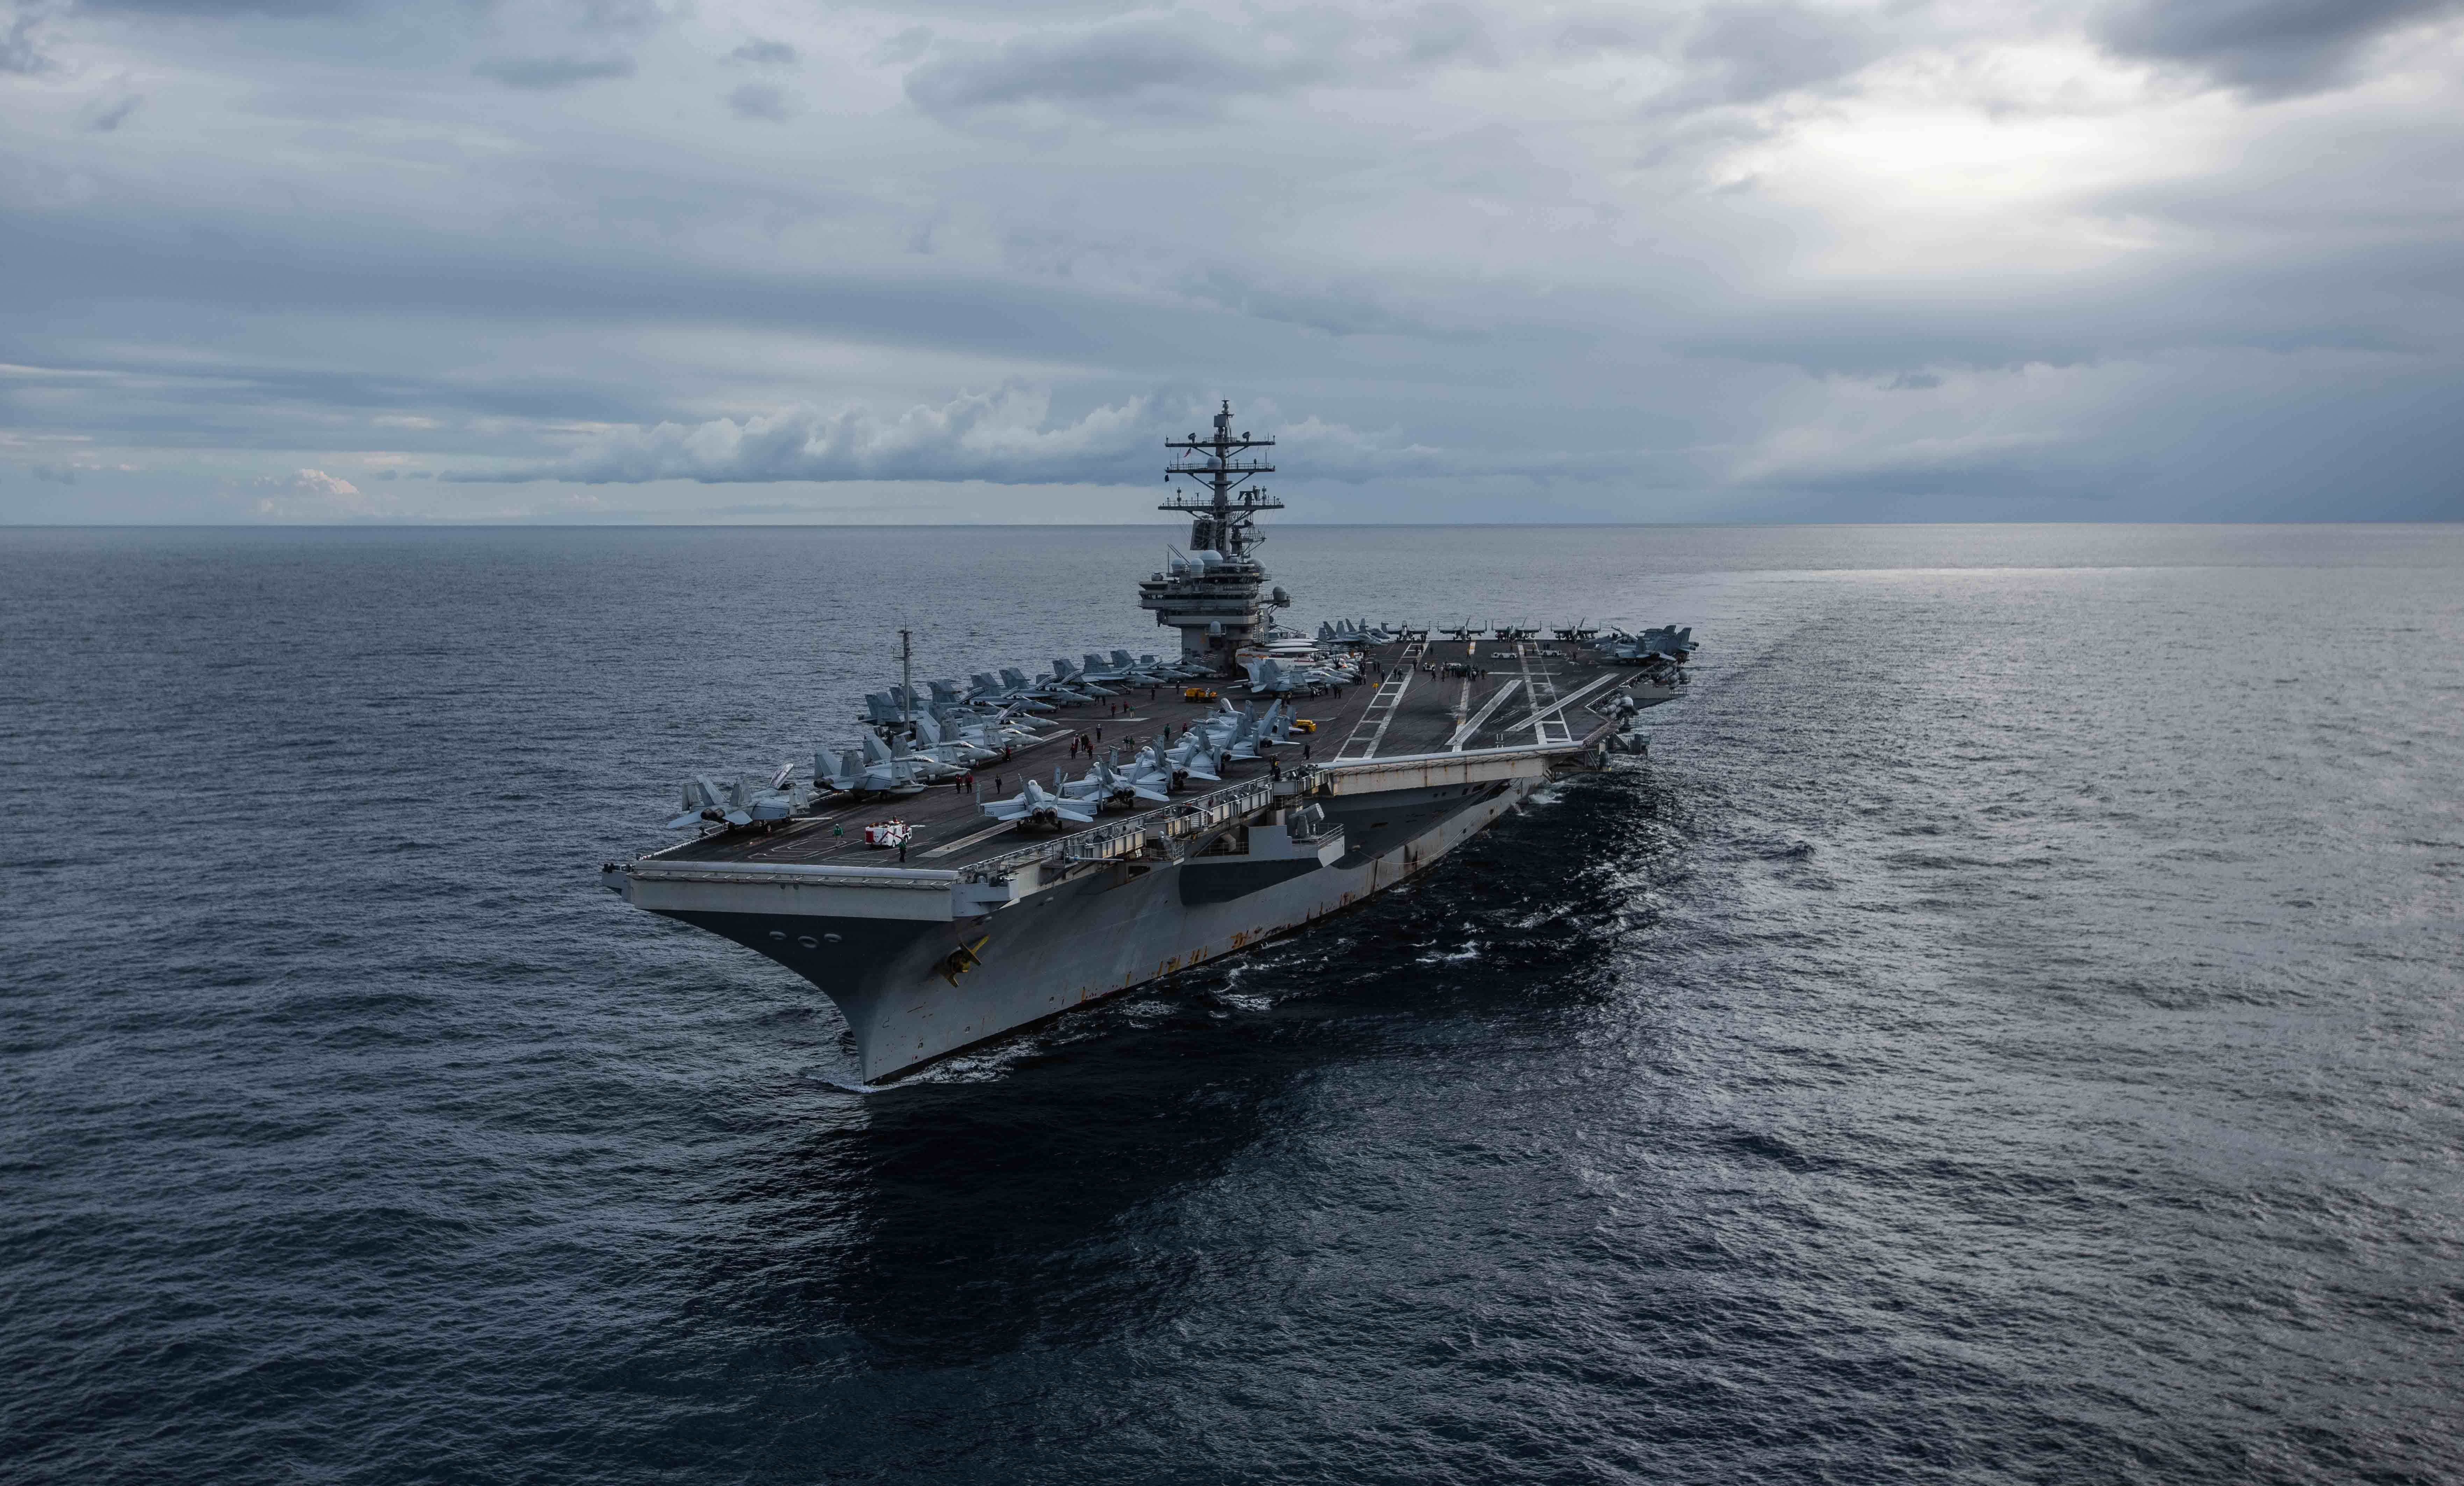 Uss Ronald Reagan Carrier Strike Group Departs For 2020 Deployment In 2020 Uss Ronald Reagan South China Sea Ronald Reagan